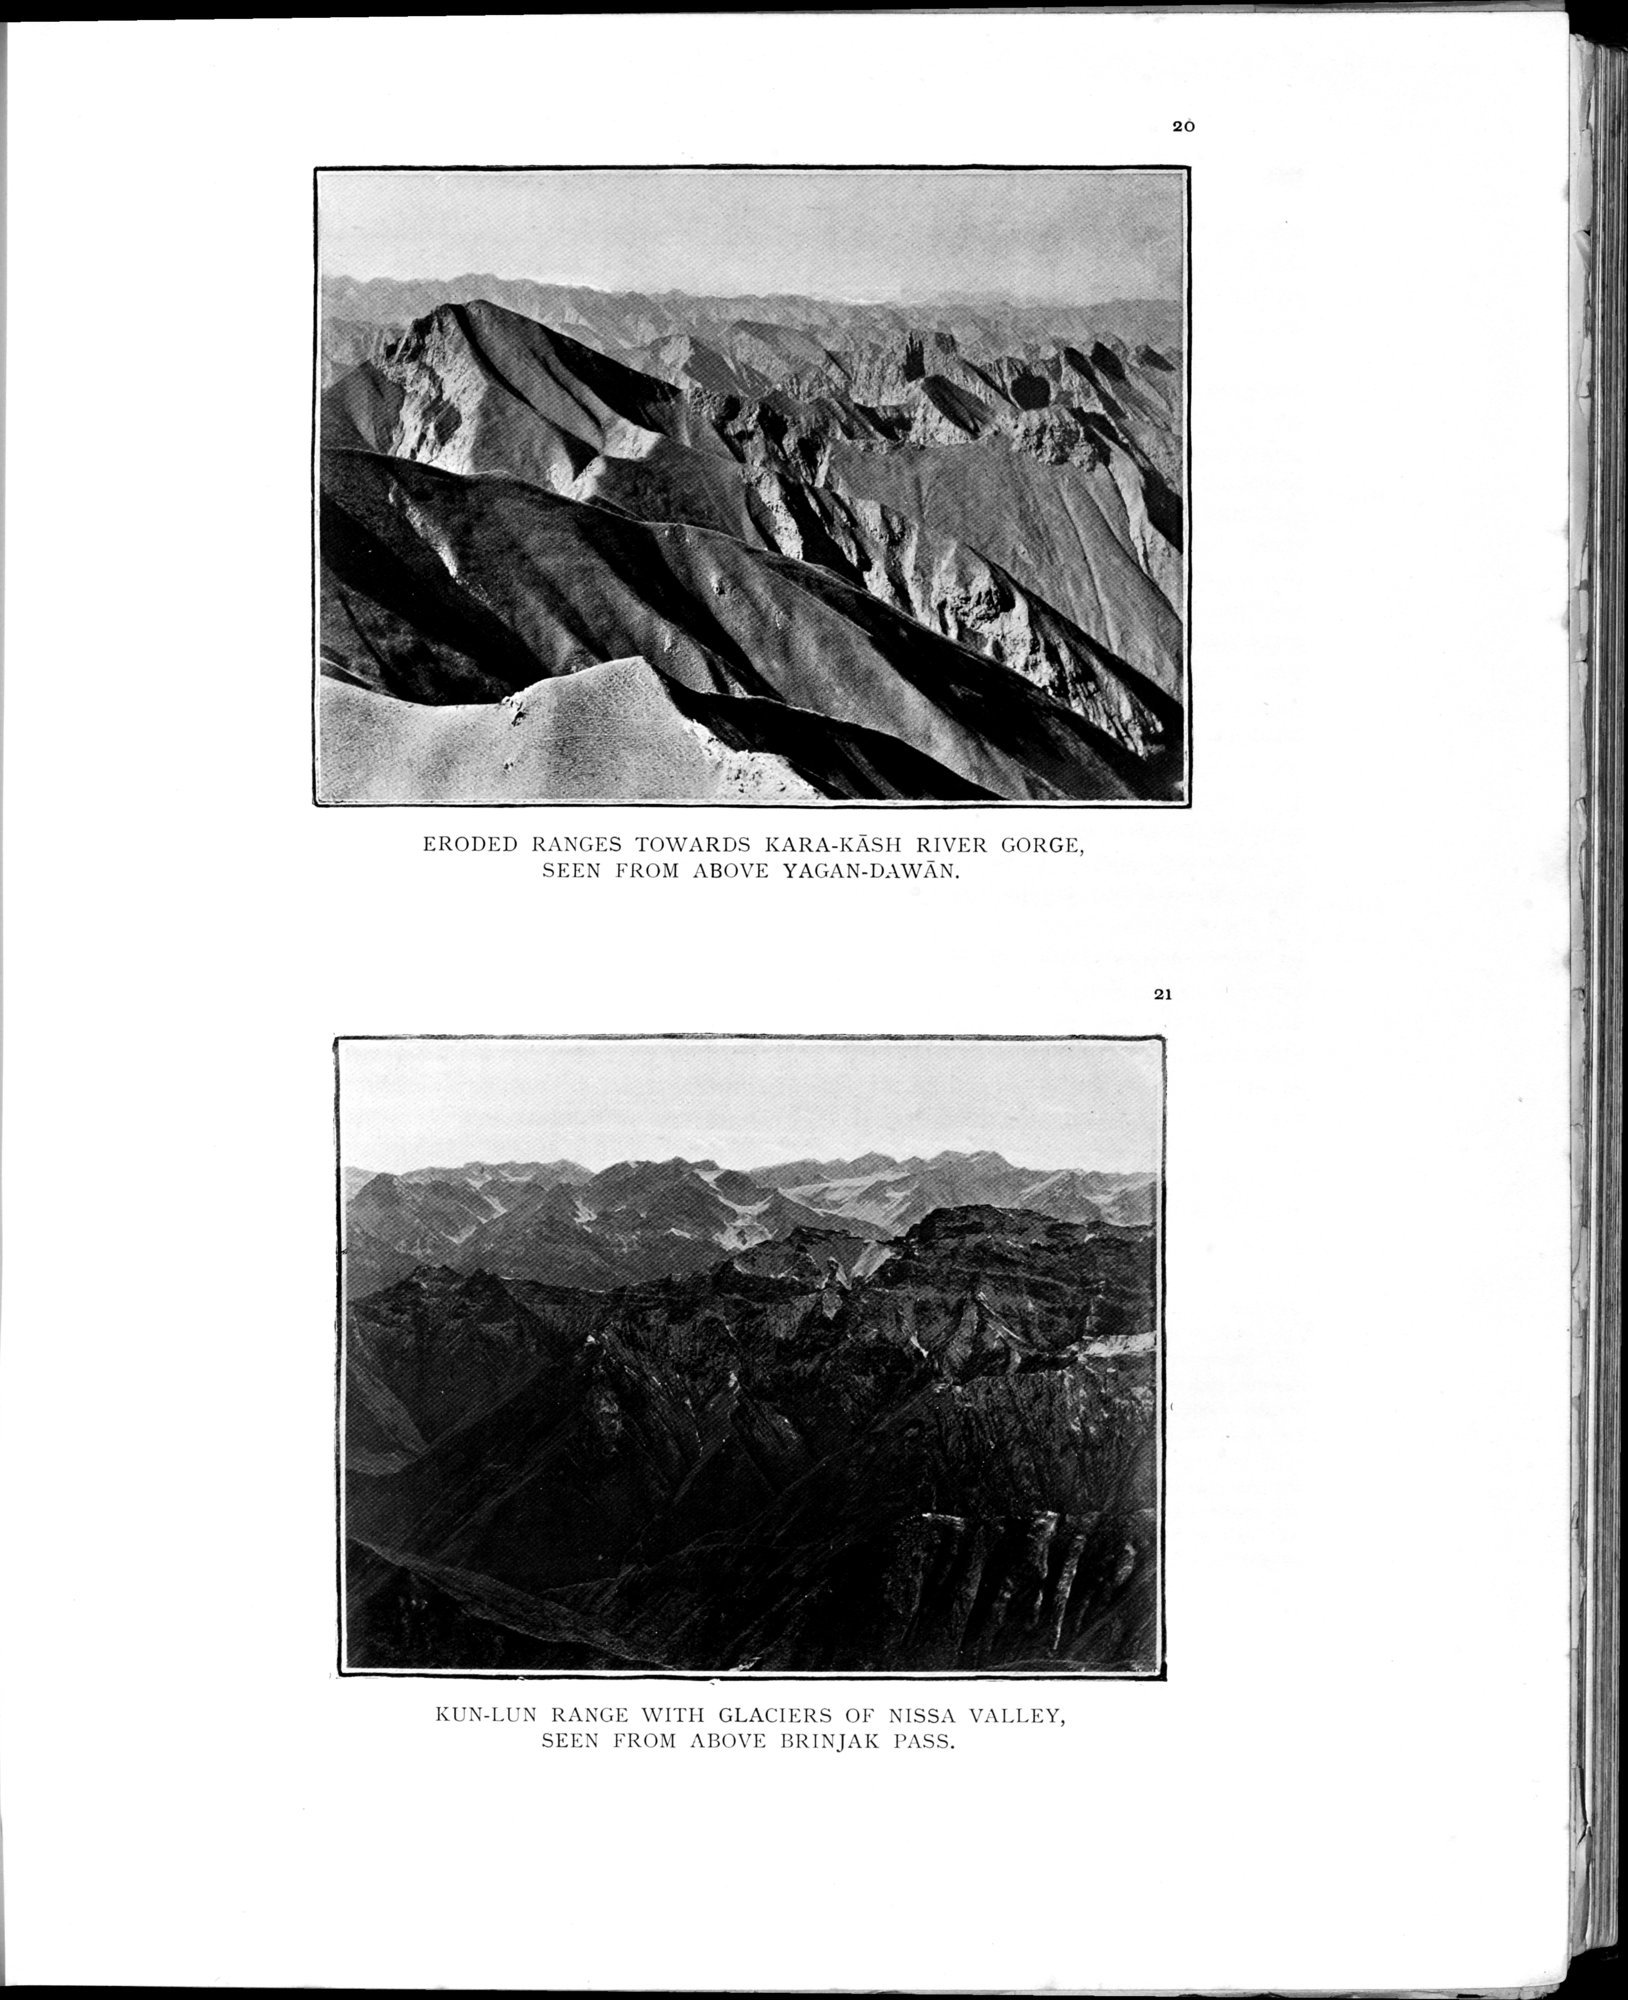 Ancient Khotan : vol.1 / Page 175 (Grayscale High Resolution Image)